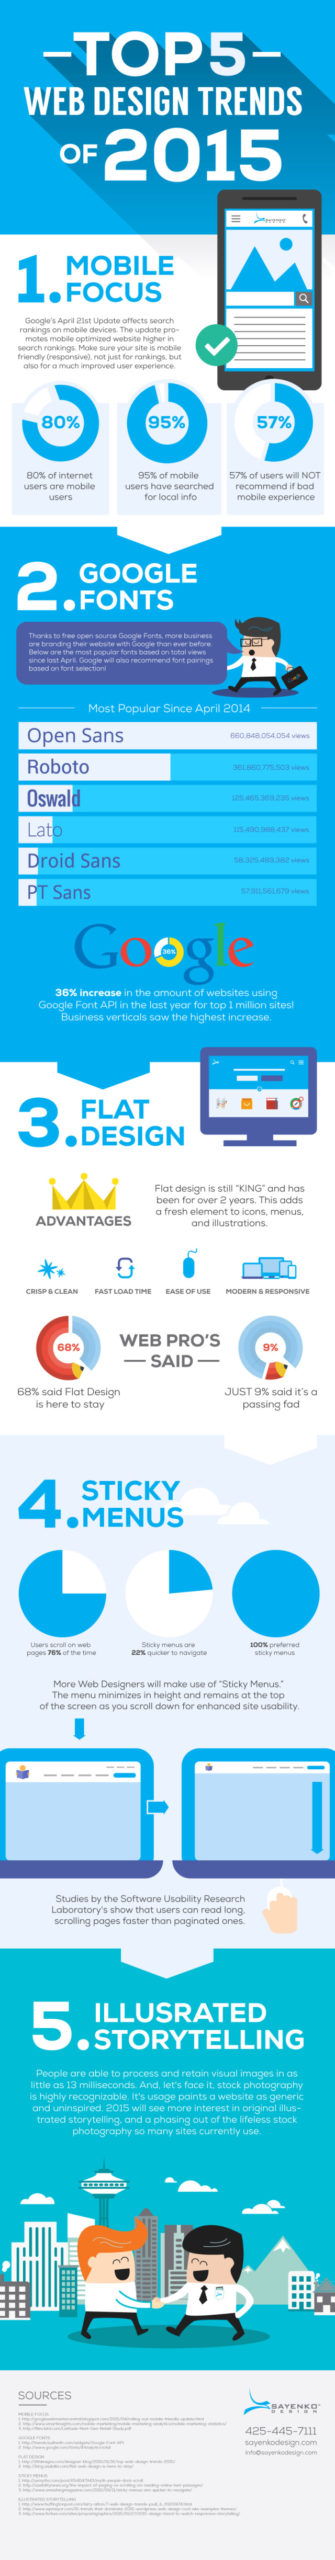 how-modern-is-your-website-the-biggest-web-design-trends-from-20151